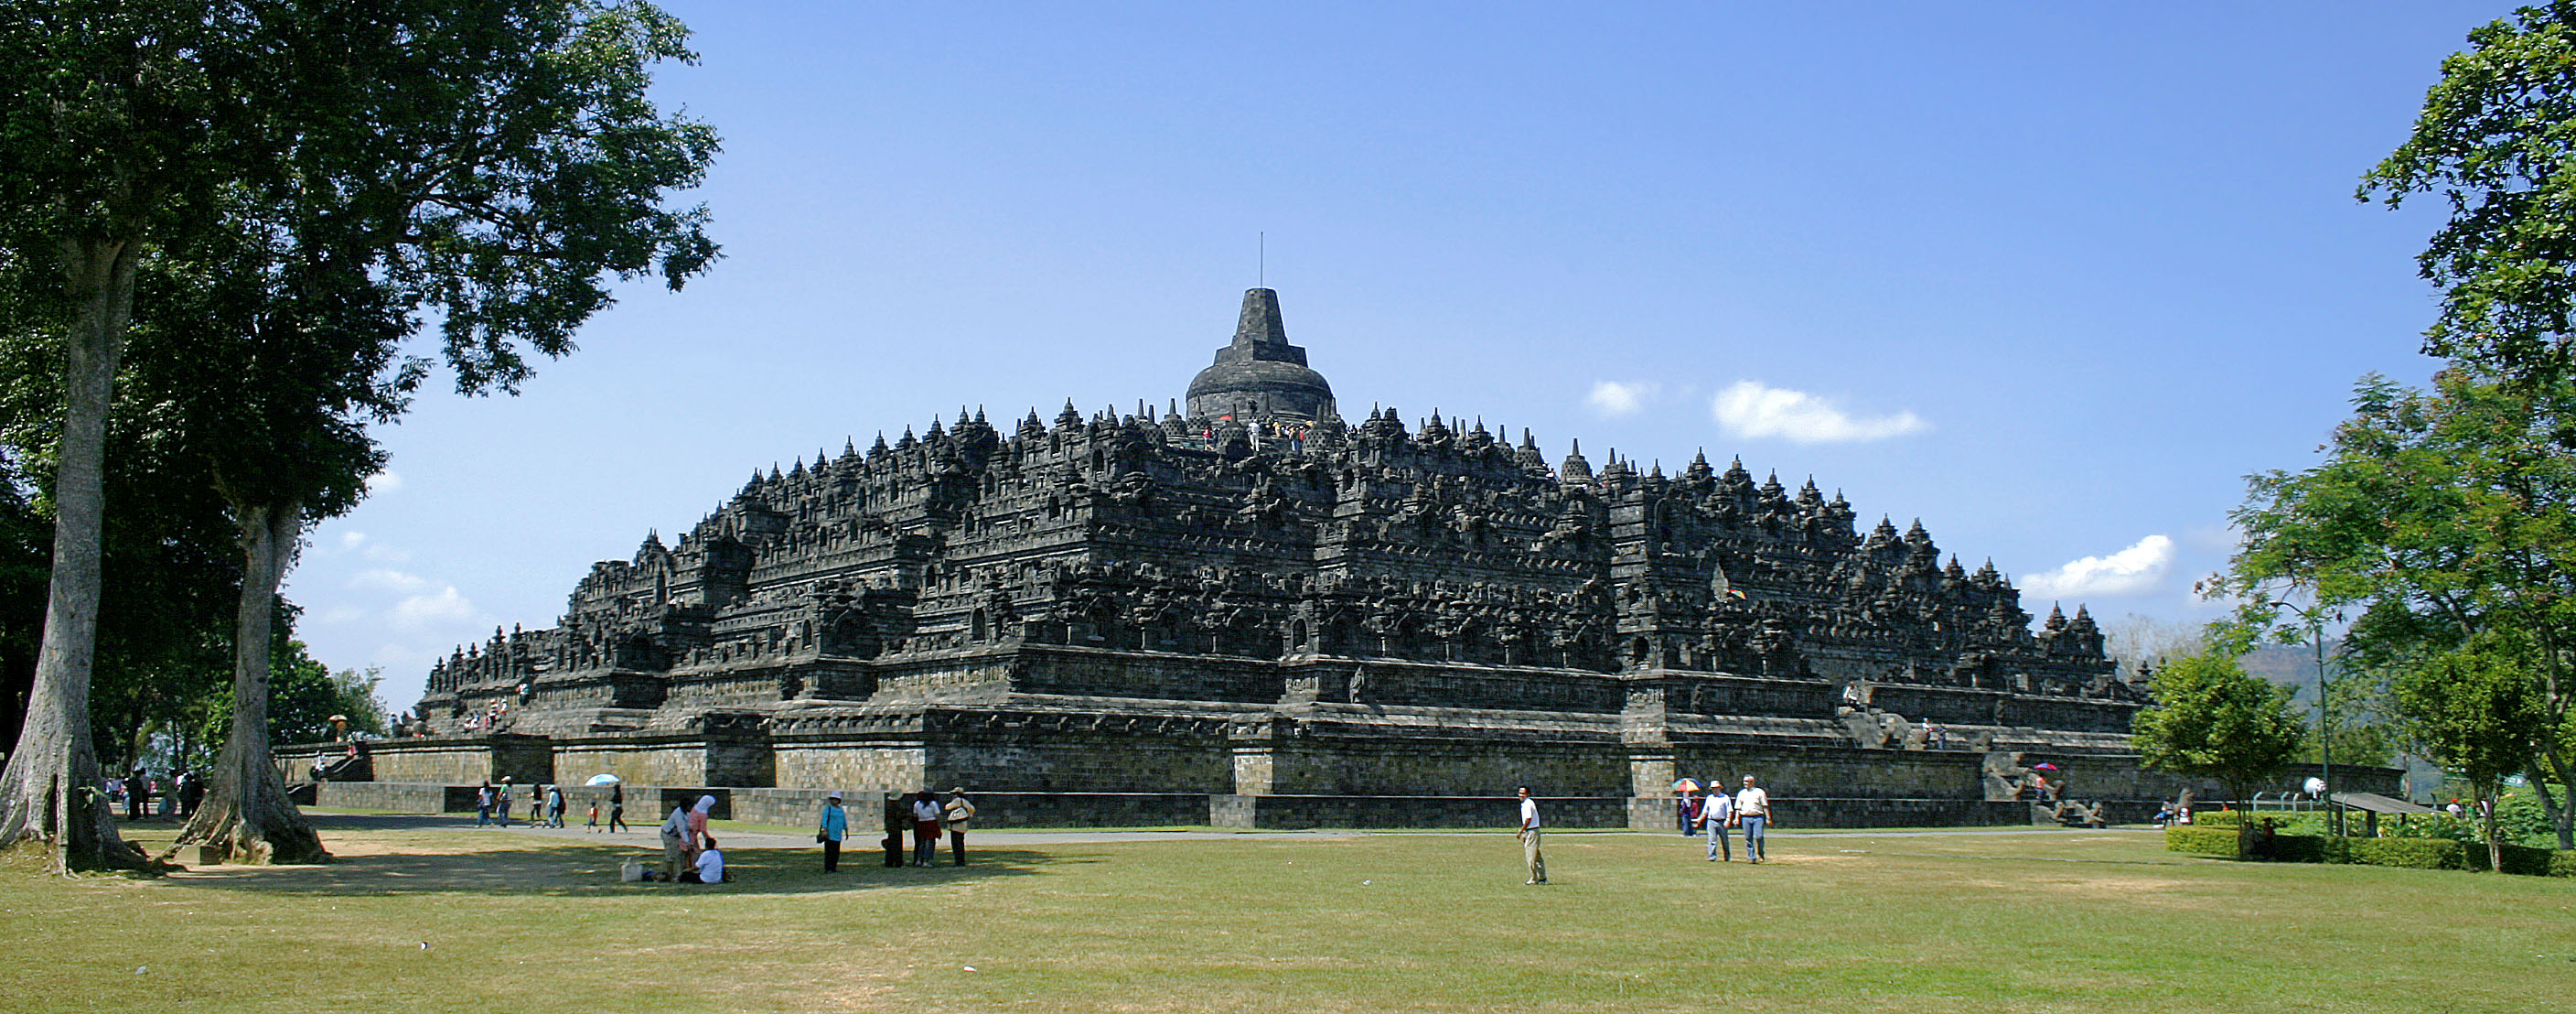 https://i0.wp.com/upload.wikimedia.org/wikipedia/commons/8/8c/Borobudur-Nothwest-view.jpg